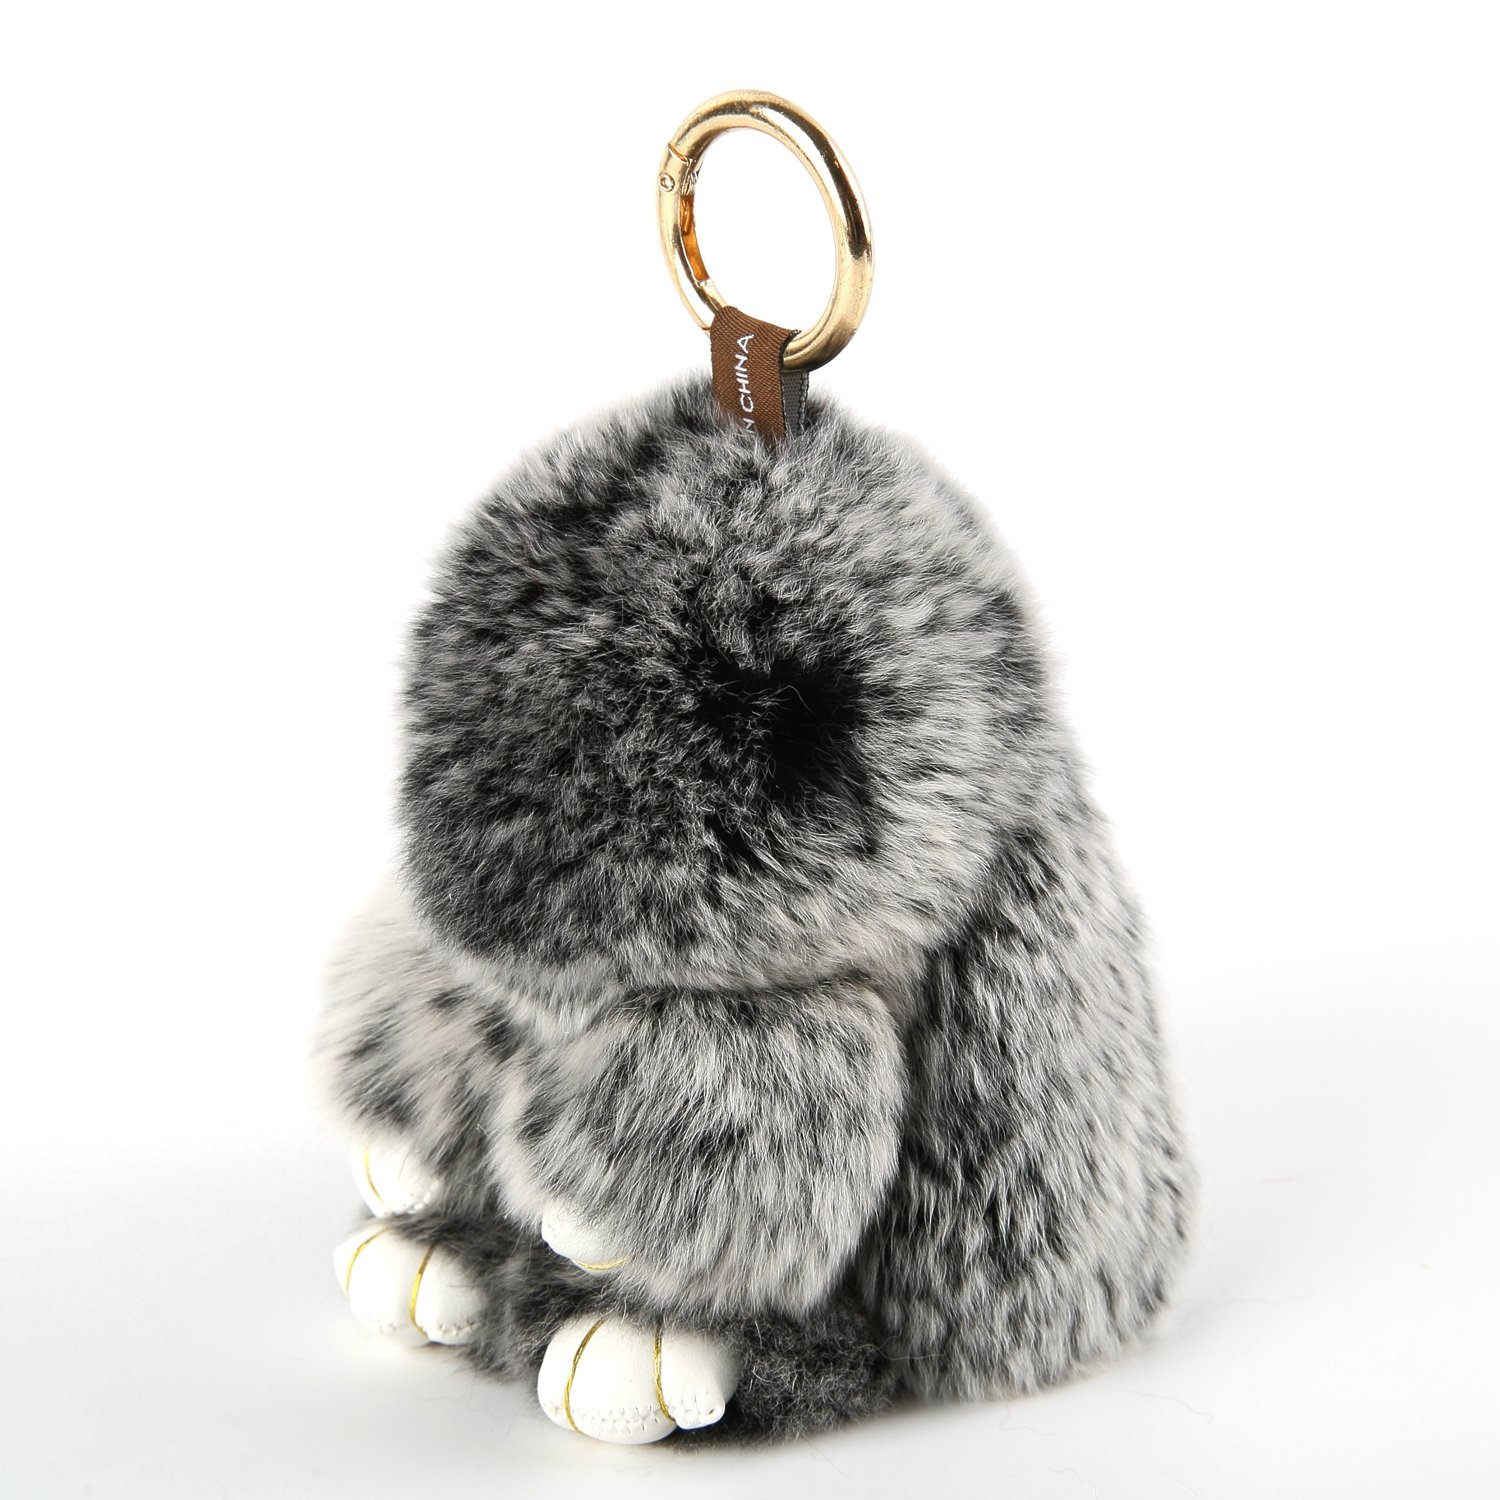 YISEVEN Stuffed Bunny Keychain Toy - Soft and Fuzzy Large Stitch Plush  Rabbit Fur Key Chain - Cute Fluffy Bunnies Floppy Furry Animal Doll Gift  for Girl ... 5b1d319c13